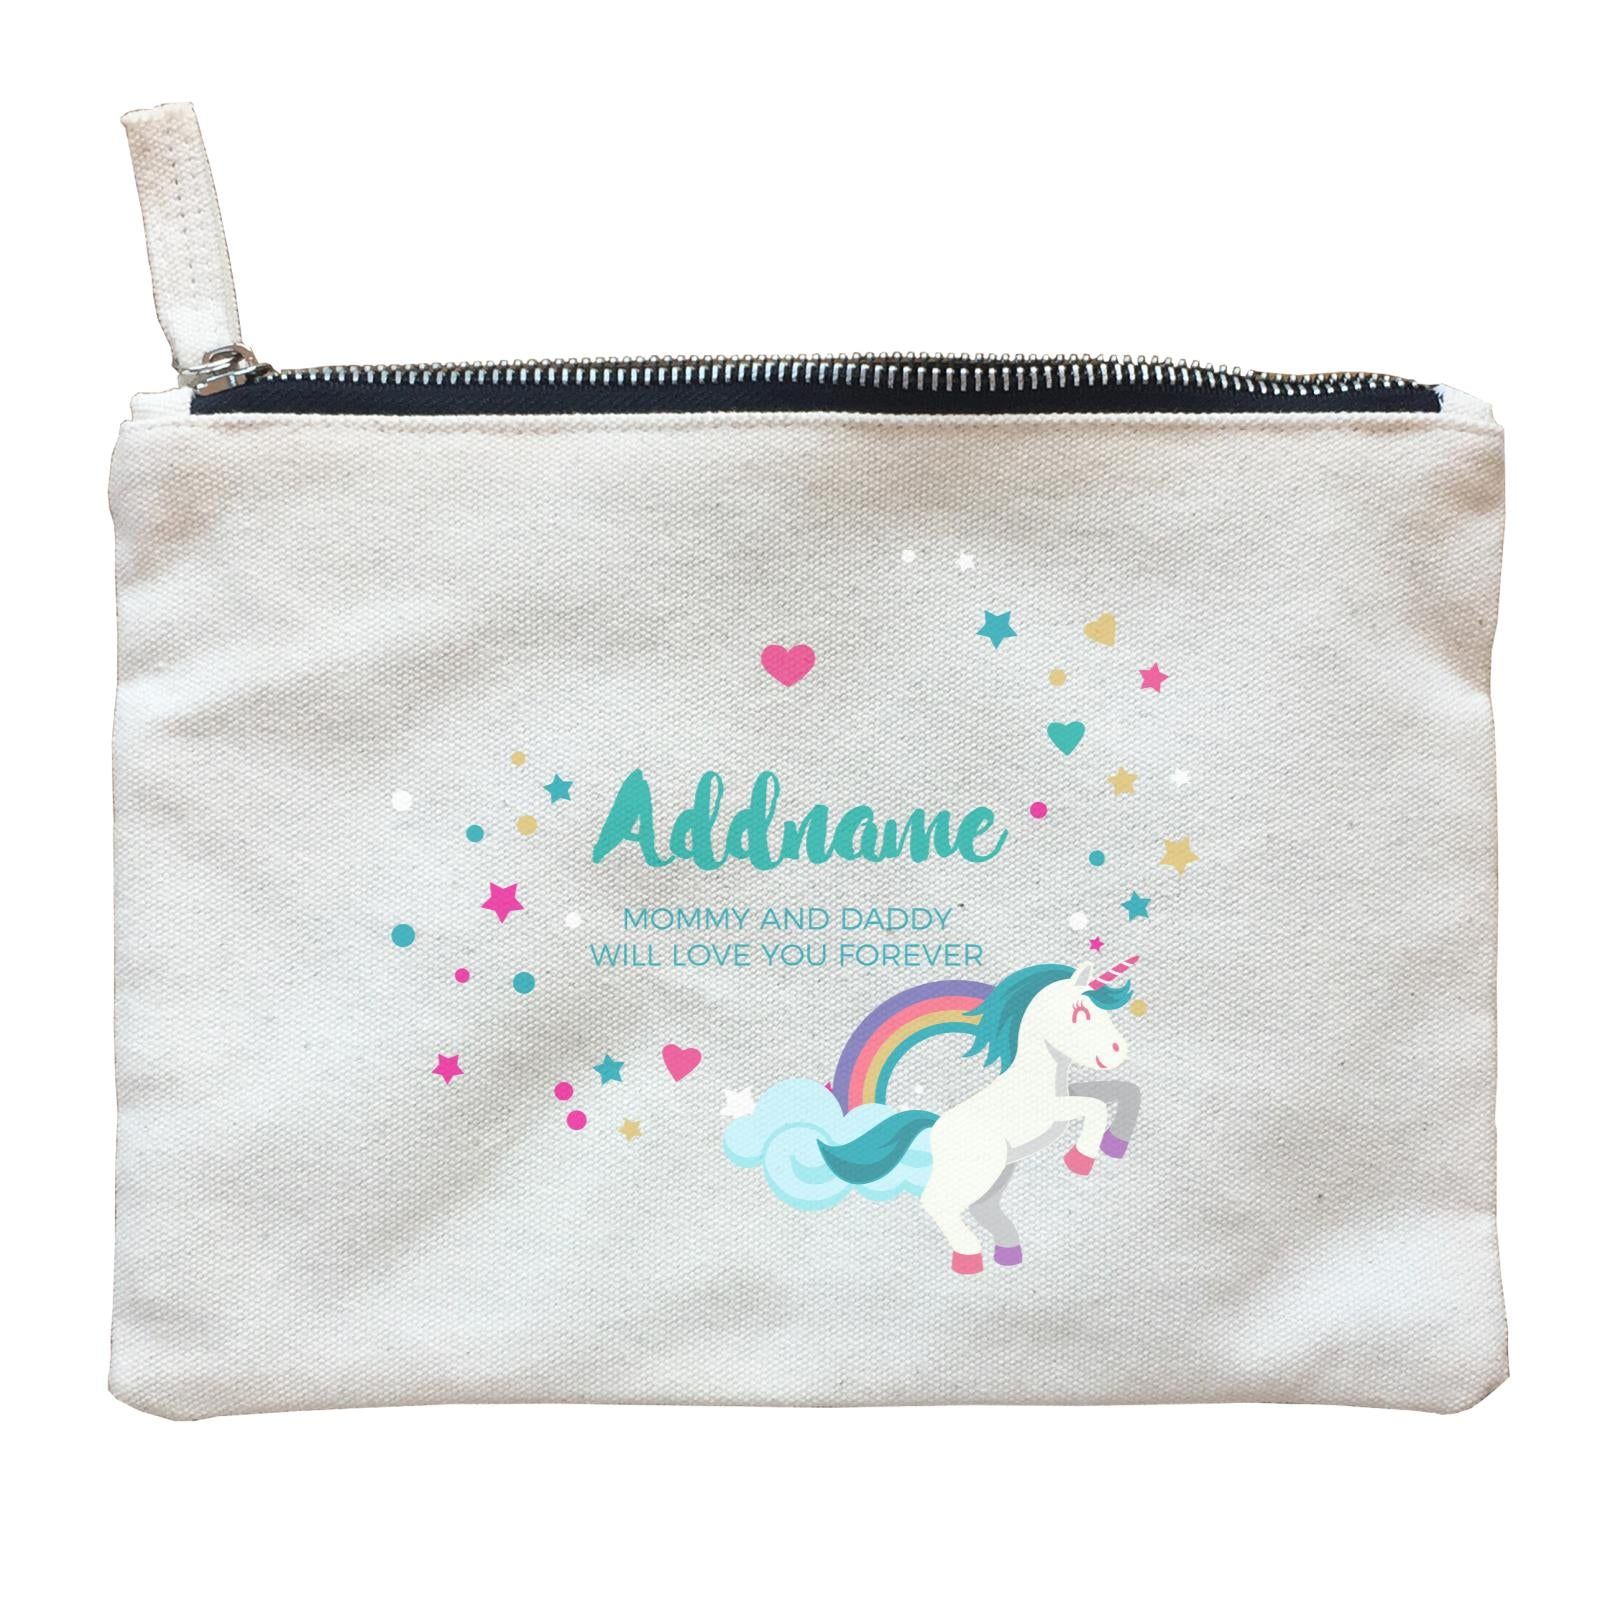 Blue Unicorn with Colourful Love and Start Elements Personalizable with Name and Text Zipper Pouch